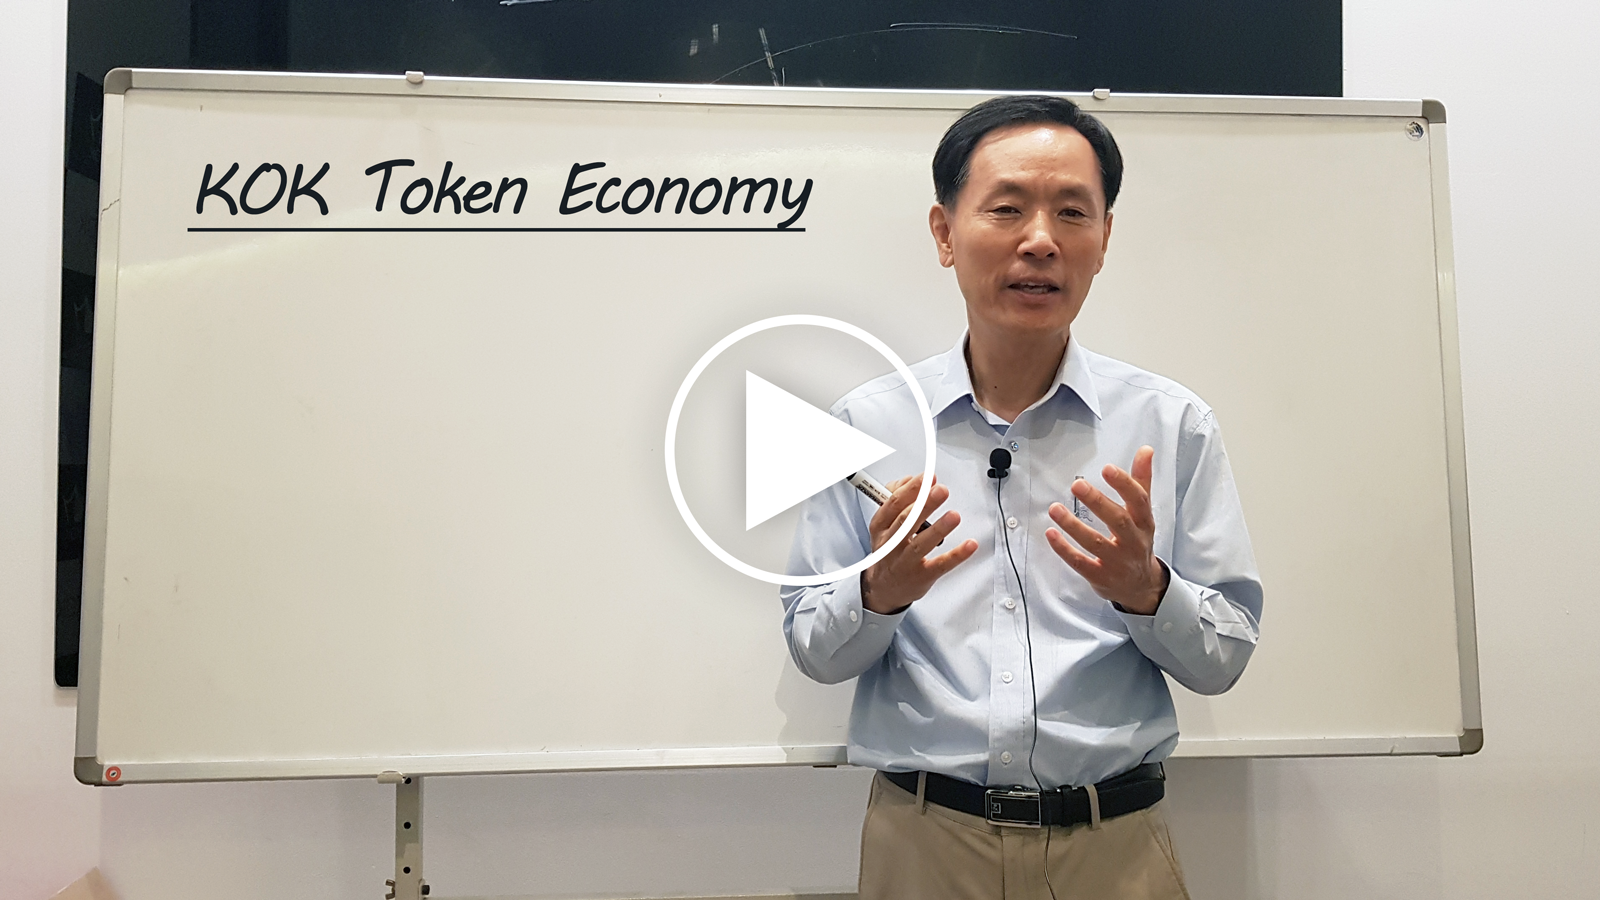 Lecture of KOK Foundation's CTO Young Choe about KOK Token Economy